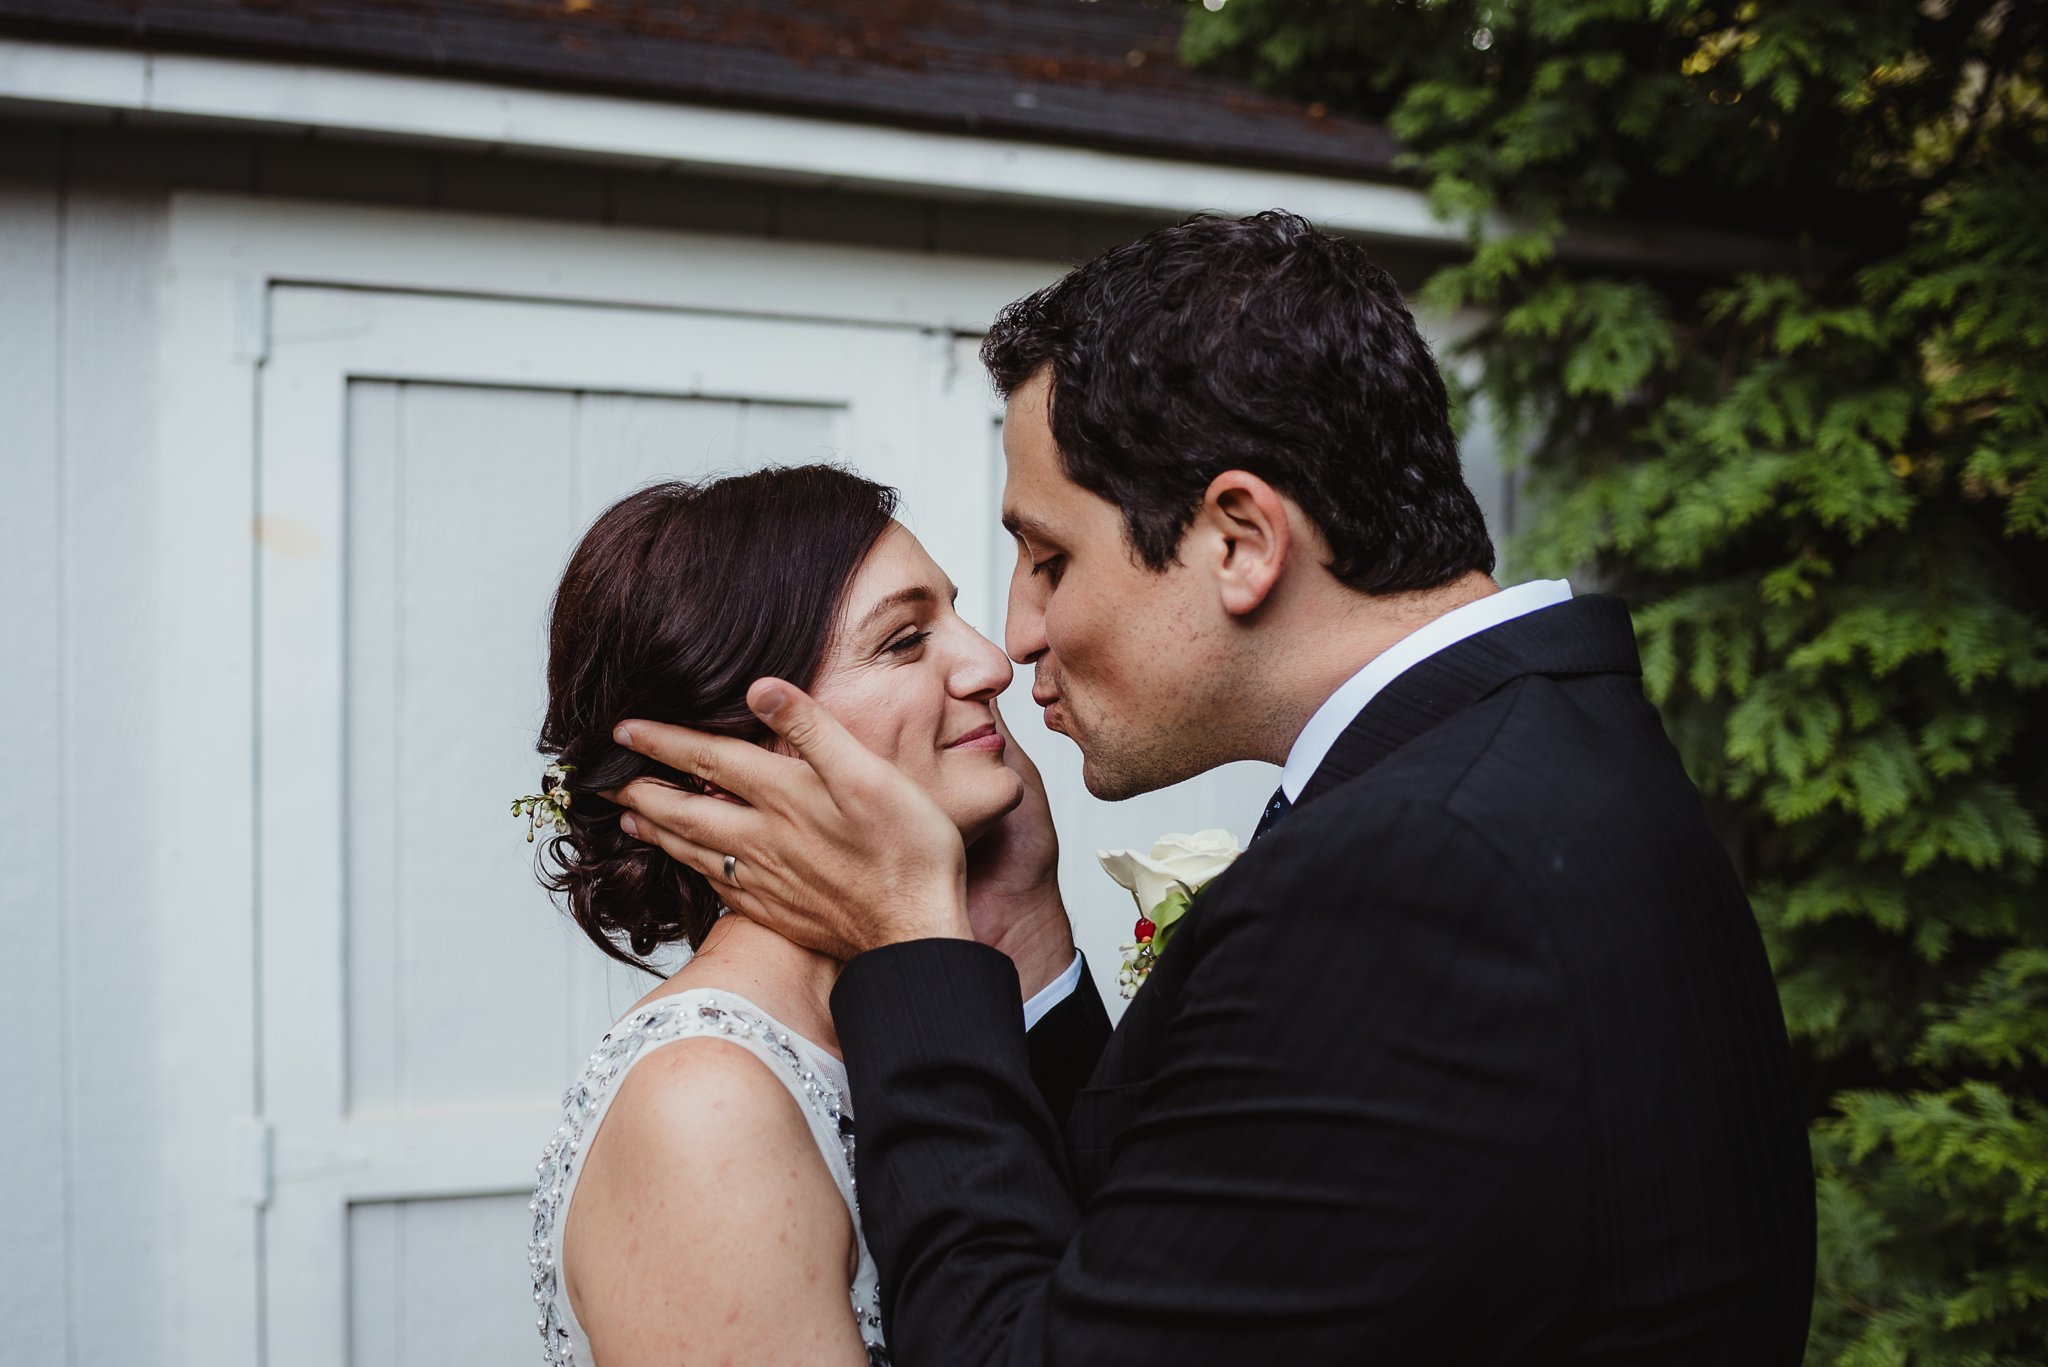 The groom holds his new brides face as he goes in to kiss her after their intimate wedding ceremony that took place in their backyard in downtown Raleigh, North Carolina, photo by Rose Trail Images.